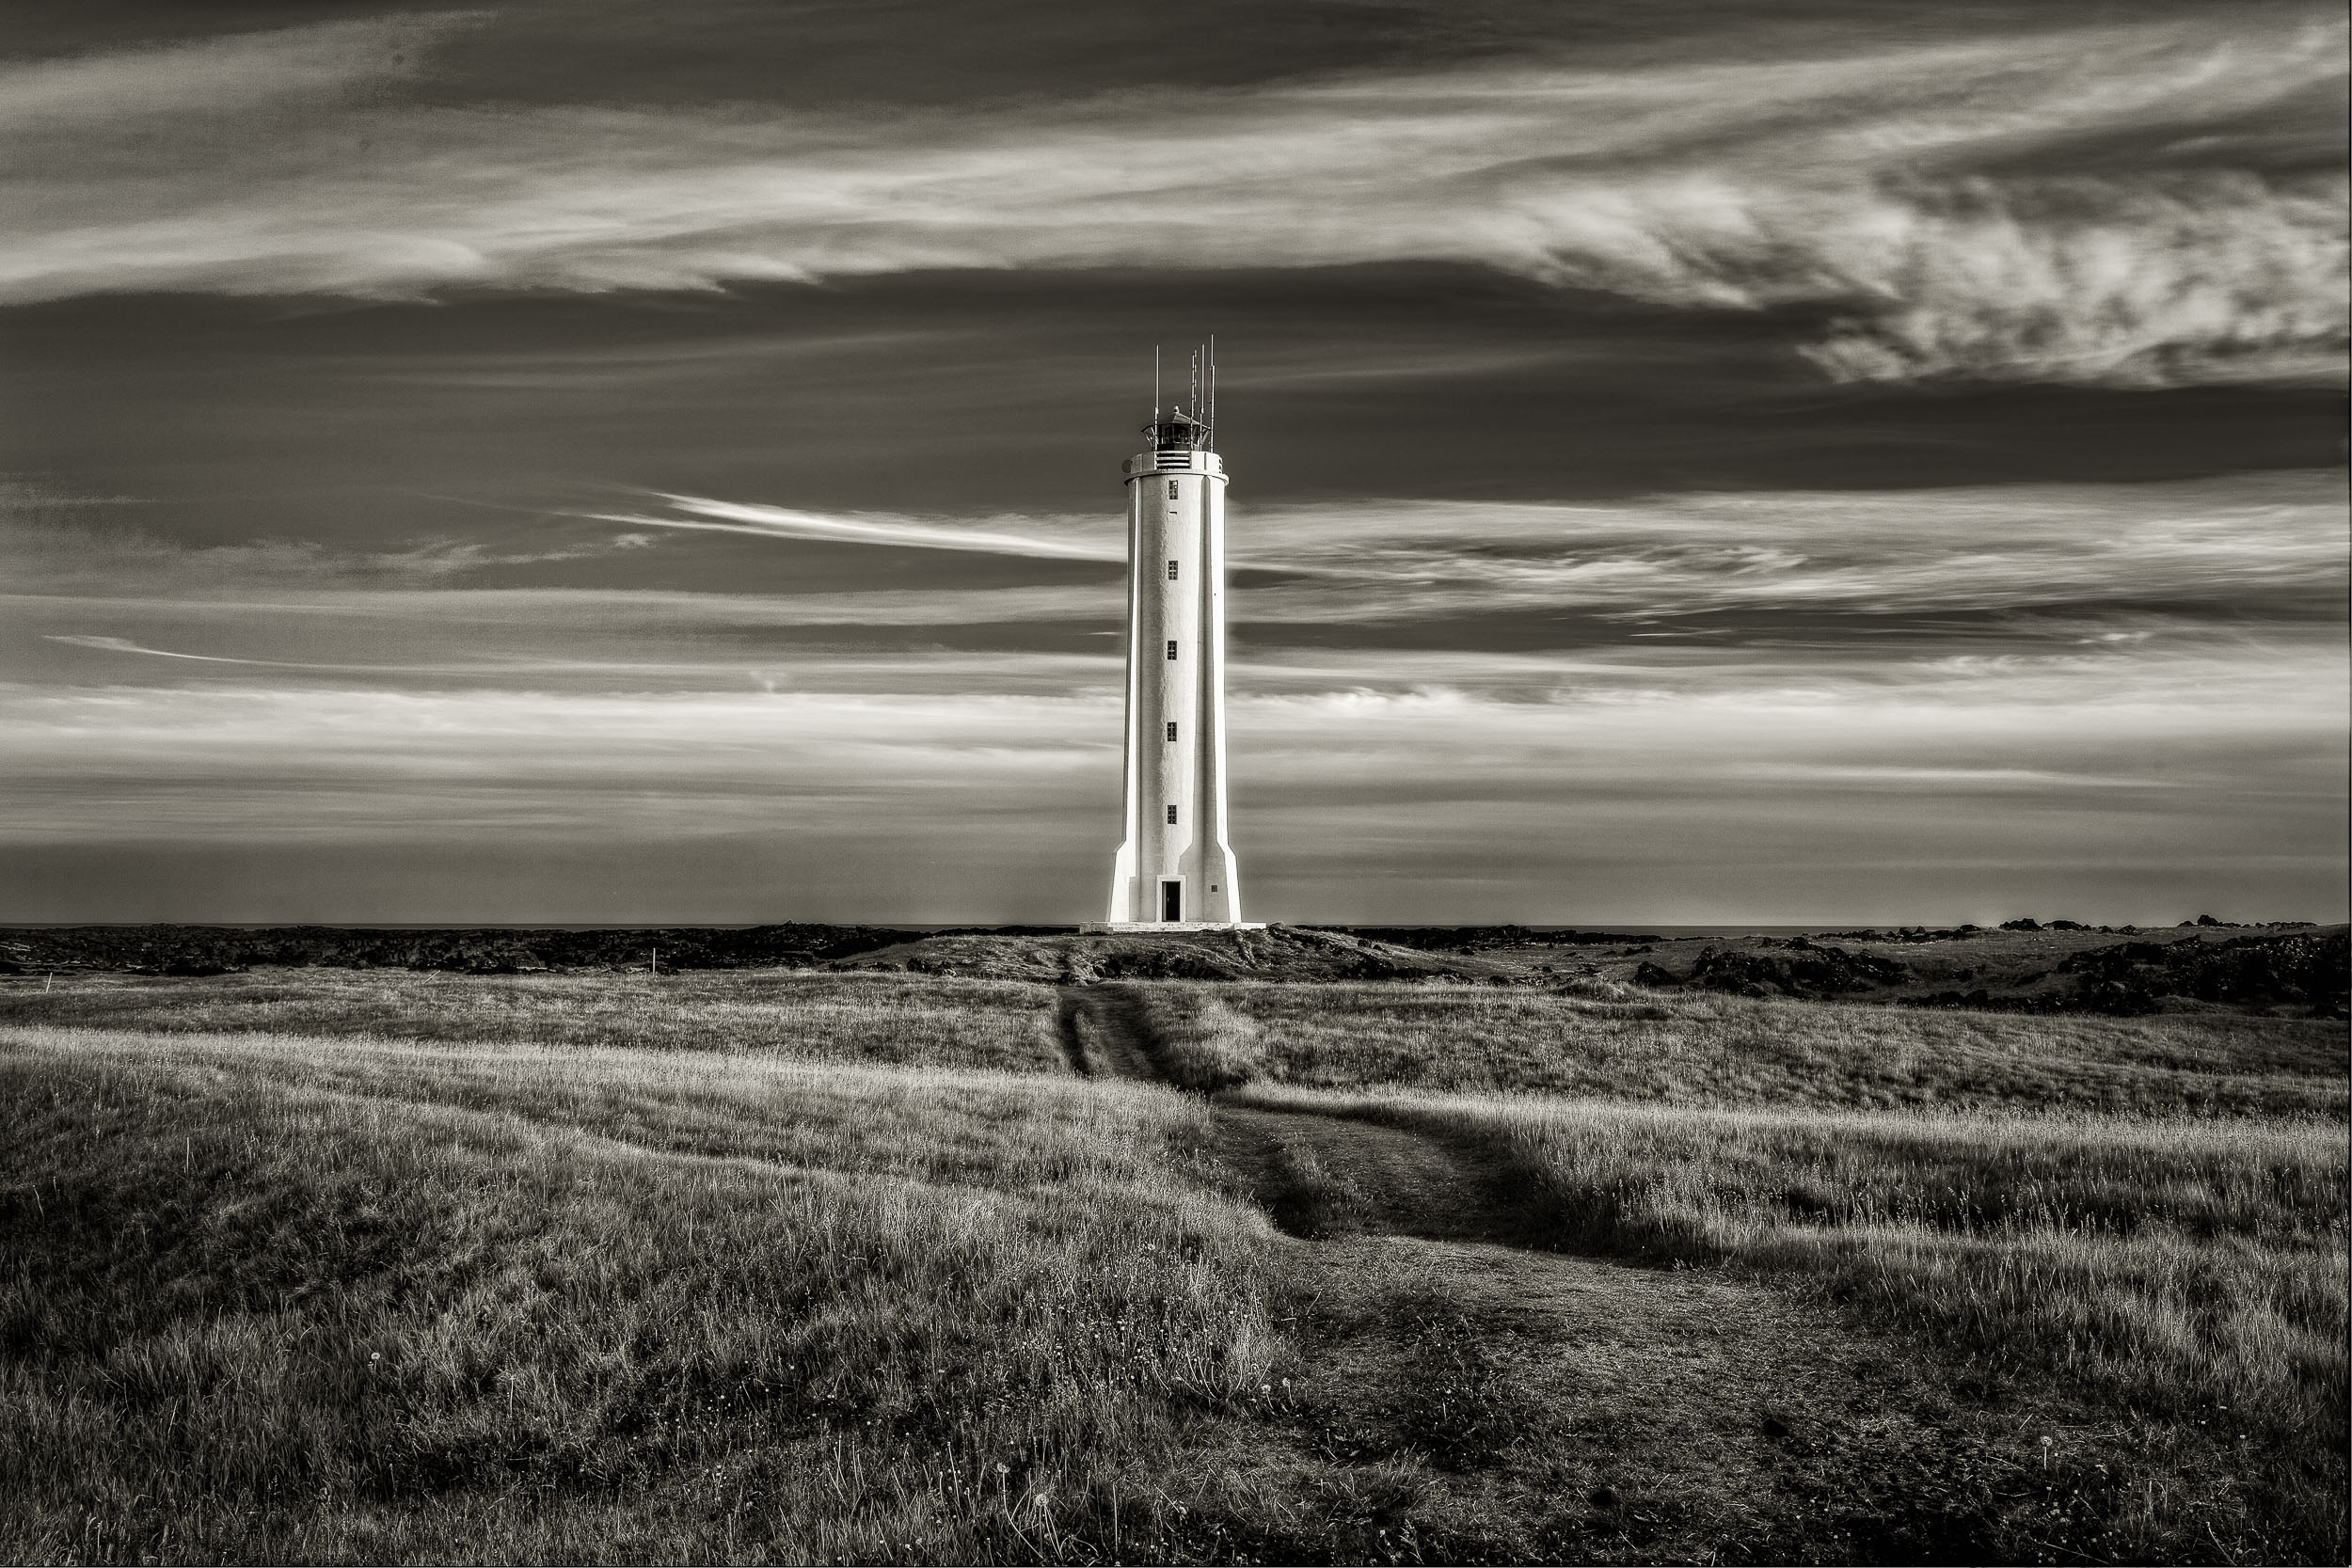 A    lighthouse    stands, strong and alert, at the edge of a field in rural    Iceland   .